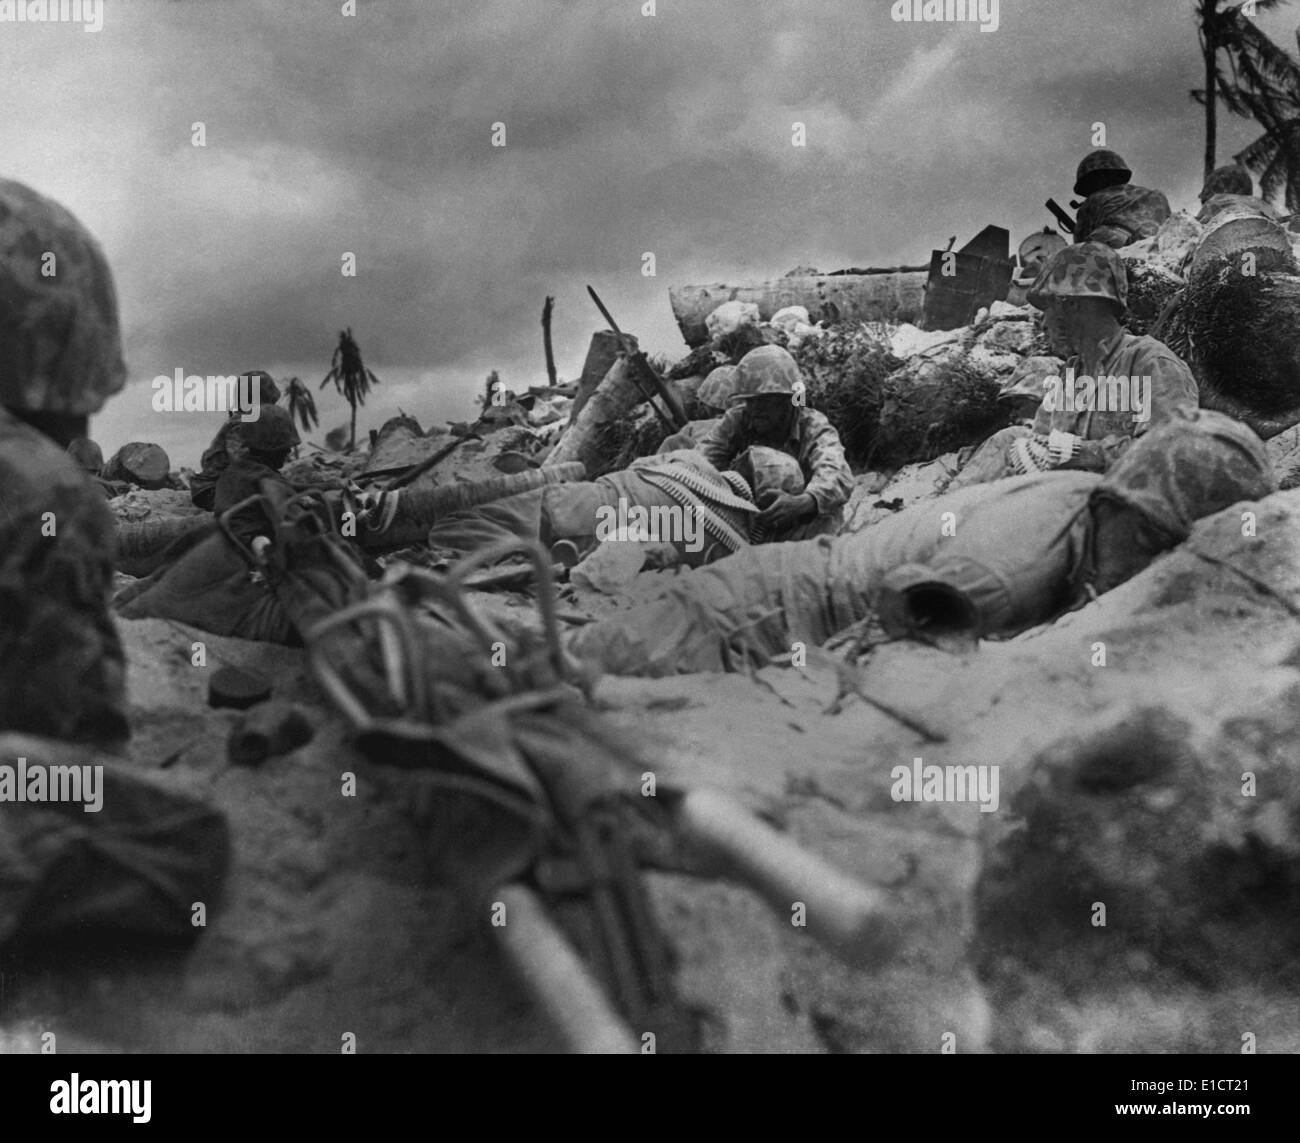 U.S. Marines take cover from Japanese fire behind a sea wall on Red Beach #3, Tarawa Island. Nov. 20, 1943. (BSLOC_2013-12_188) - Stock Image